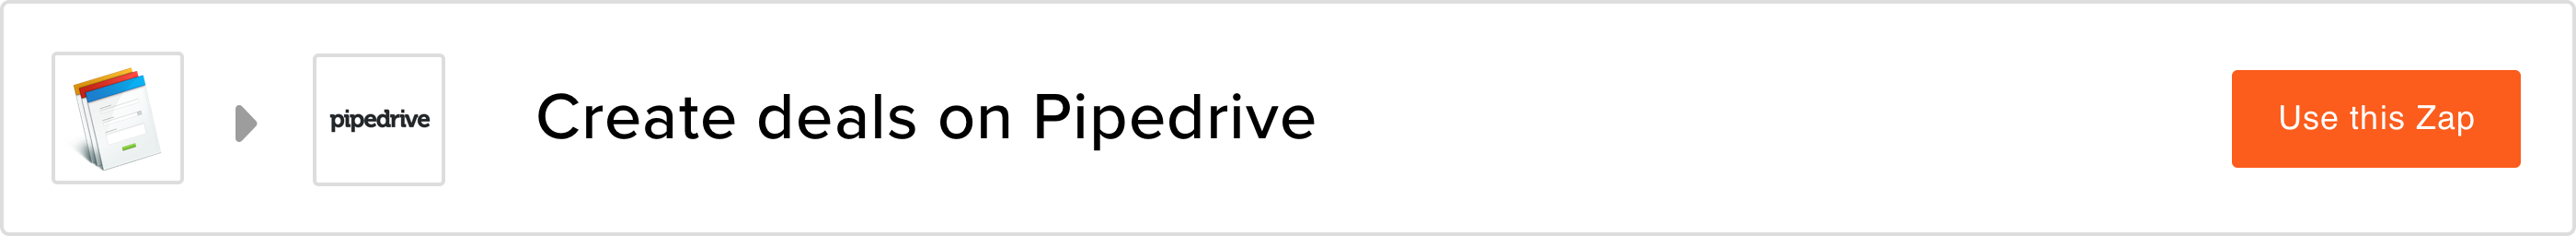 Create deals on Pipedrive